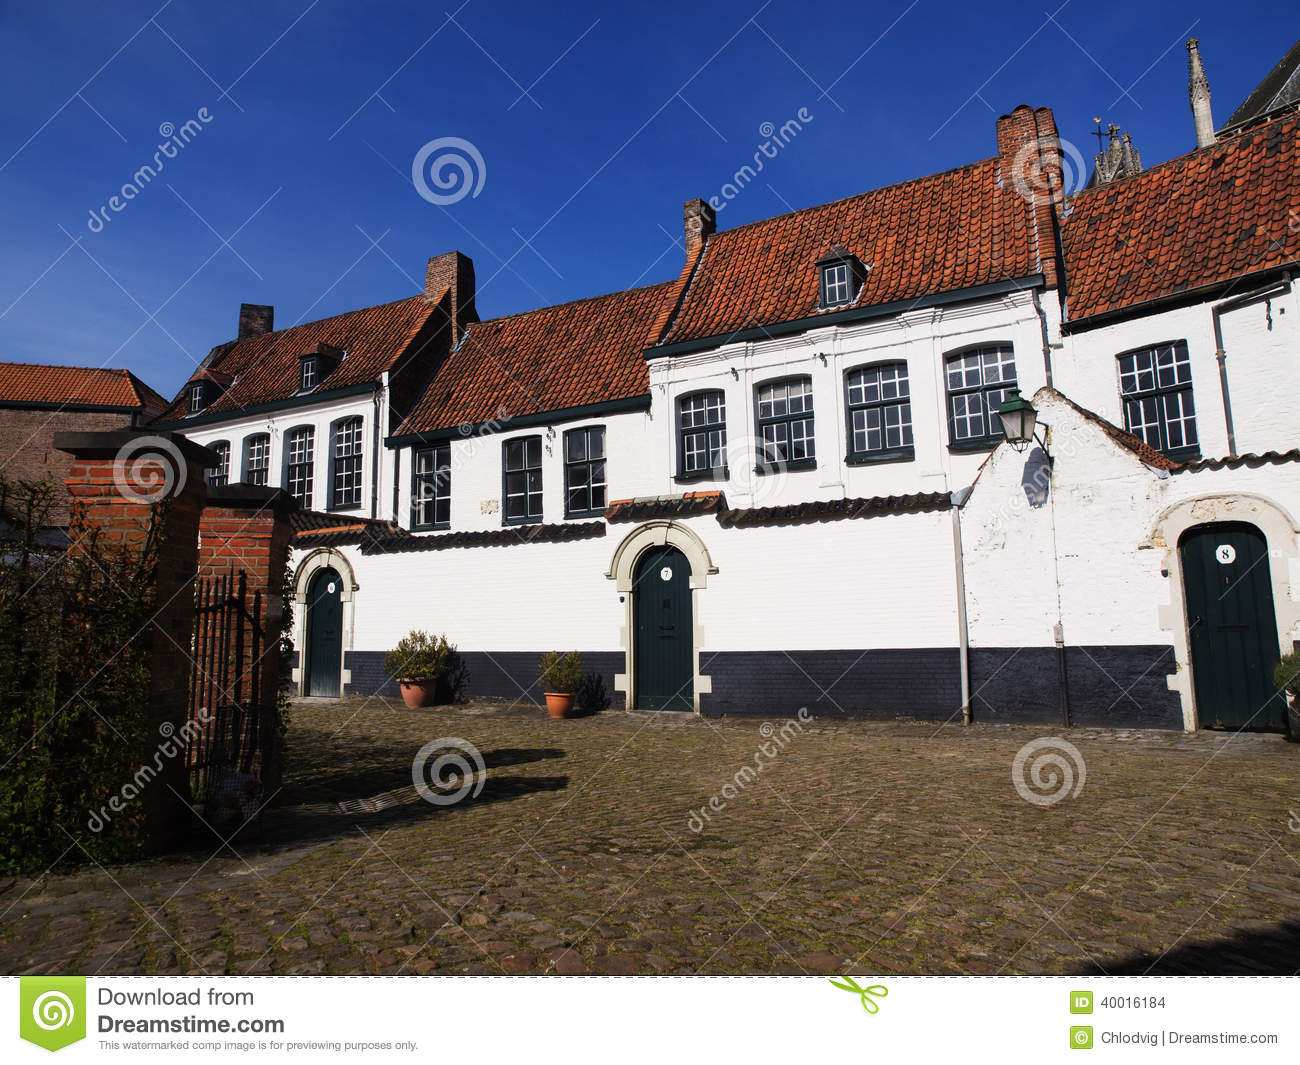 Camere in Beguinage nel Belgio